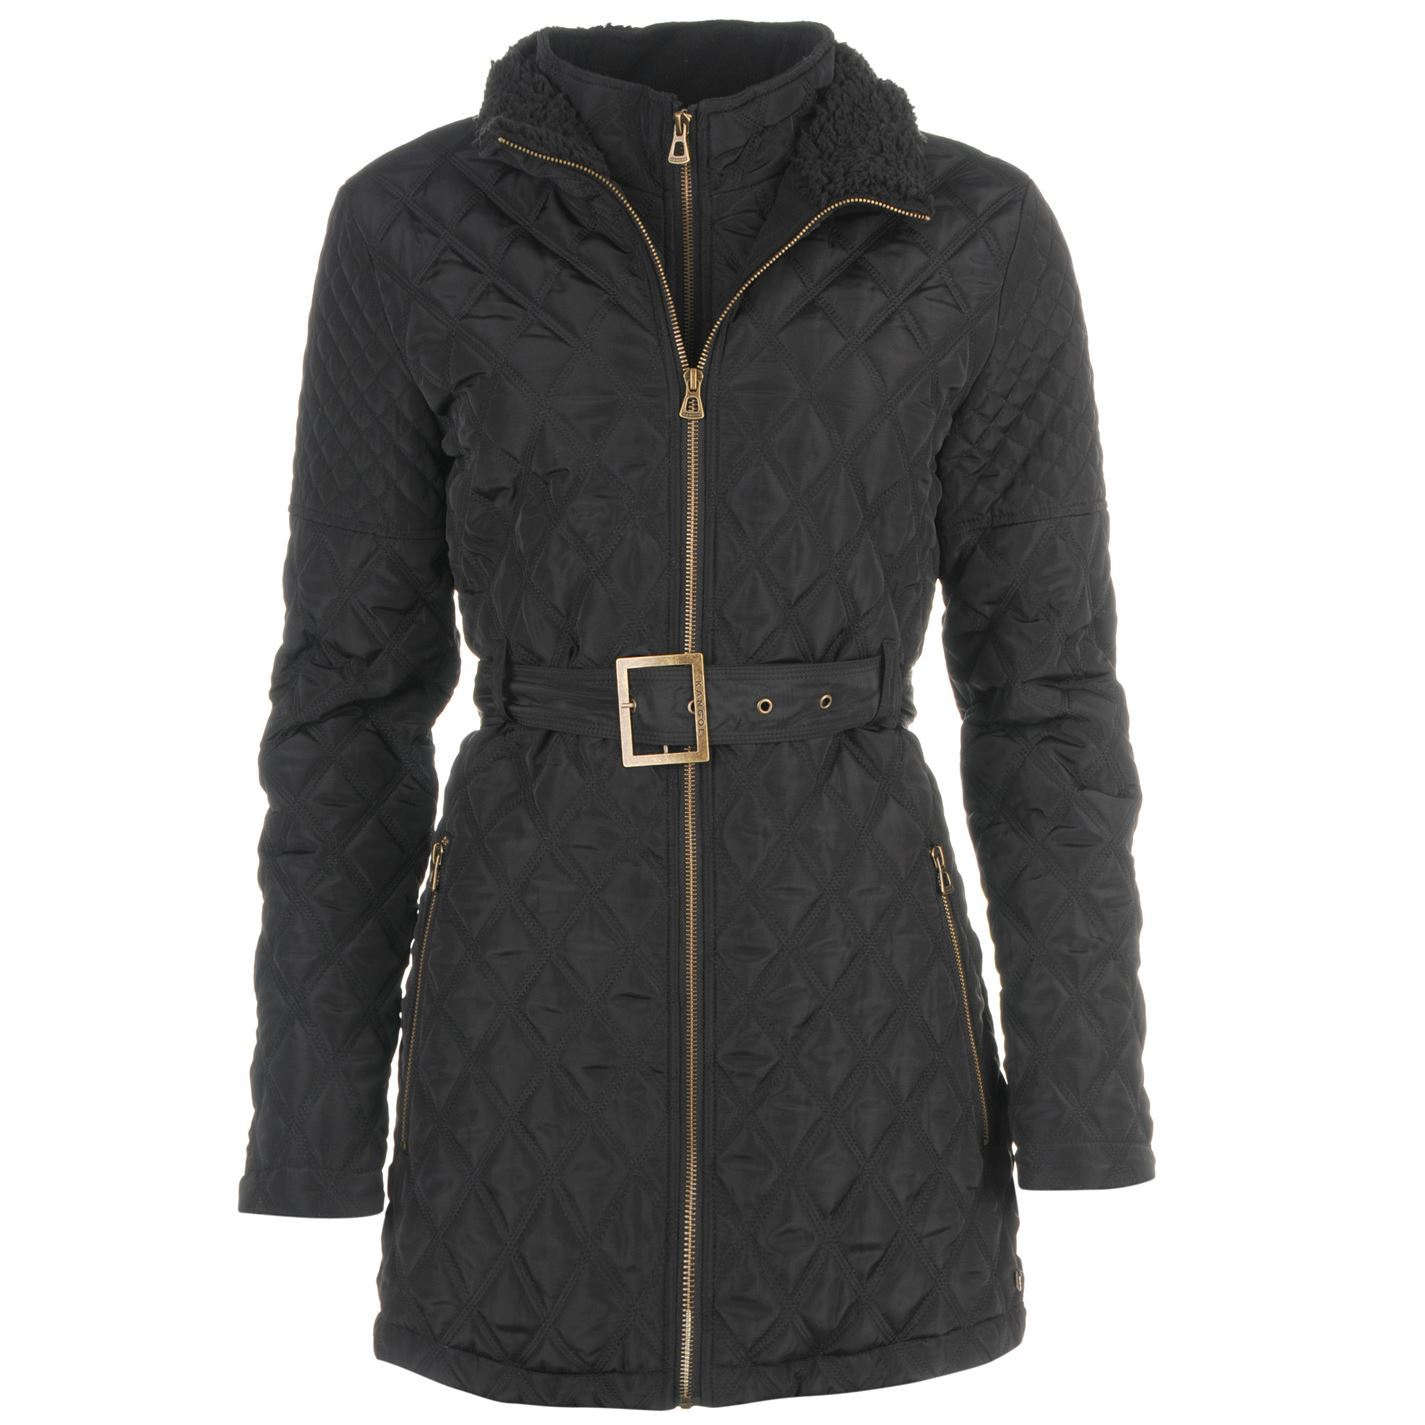 Free shipping and returns on Men's Quilted & Puffer Coats & Jackets at loadingbassqz.cf